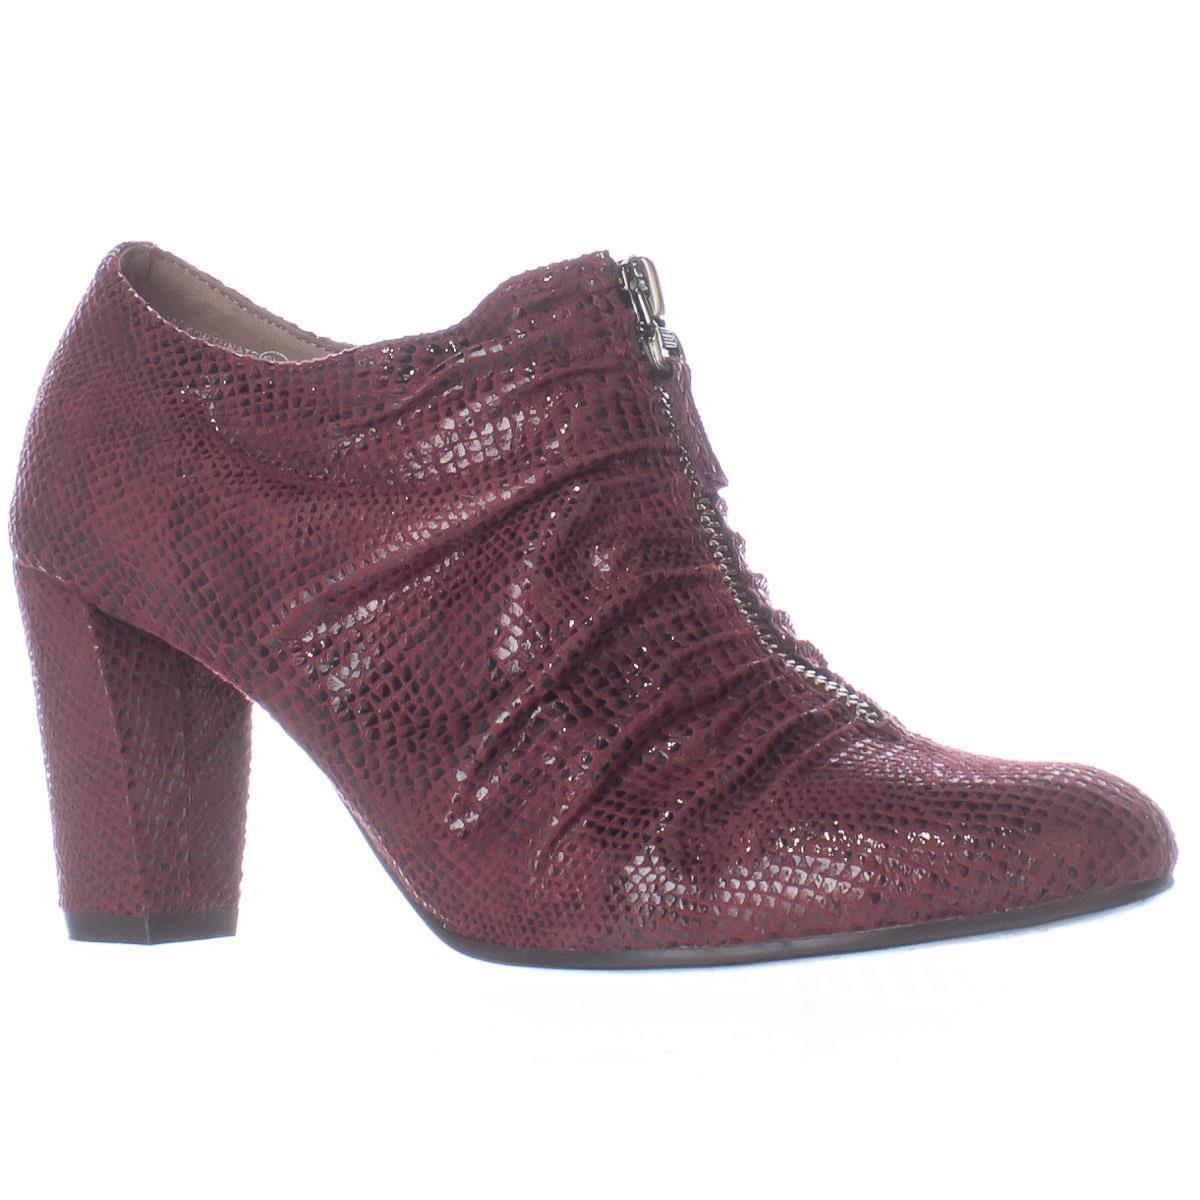 Womens Aerosoles Fortunate Front Zip Scrunch Ankle Boots, Wine Snake by Aerosoles